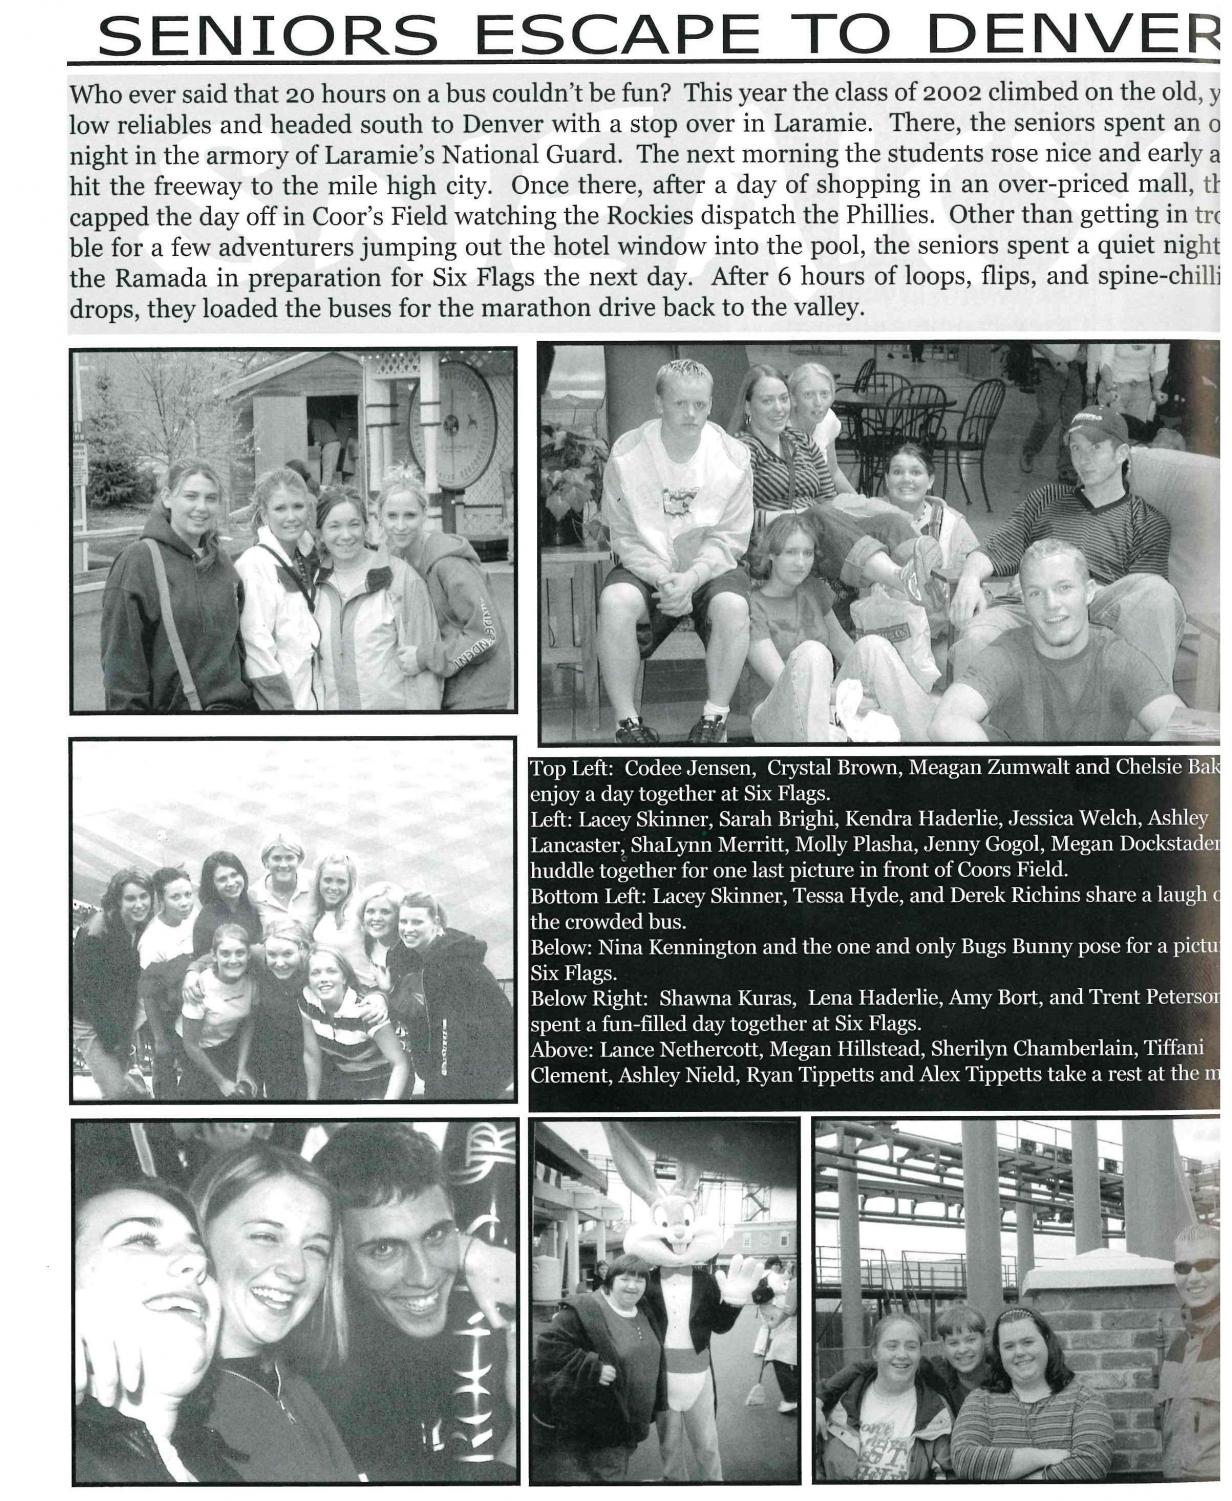 SNEAKY: This page from the 2002 yearbook chronicles the senior sneak to Denver.